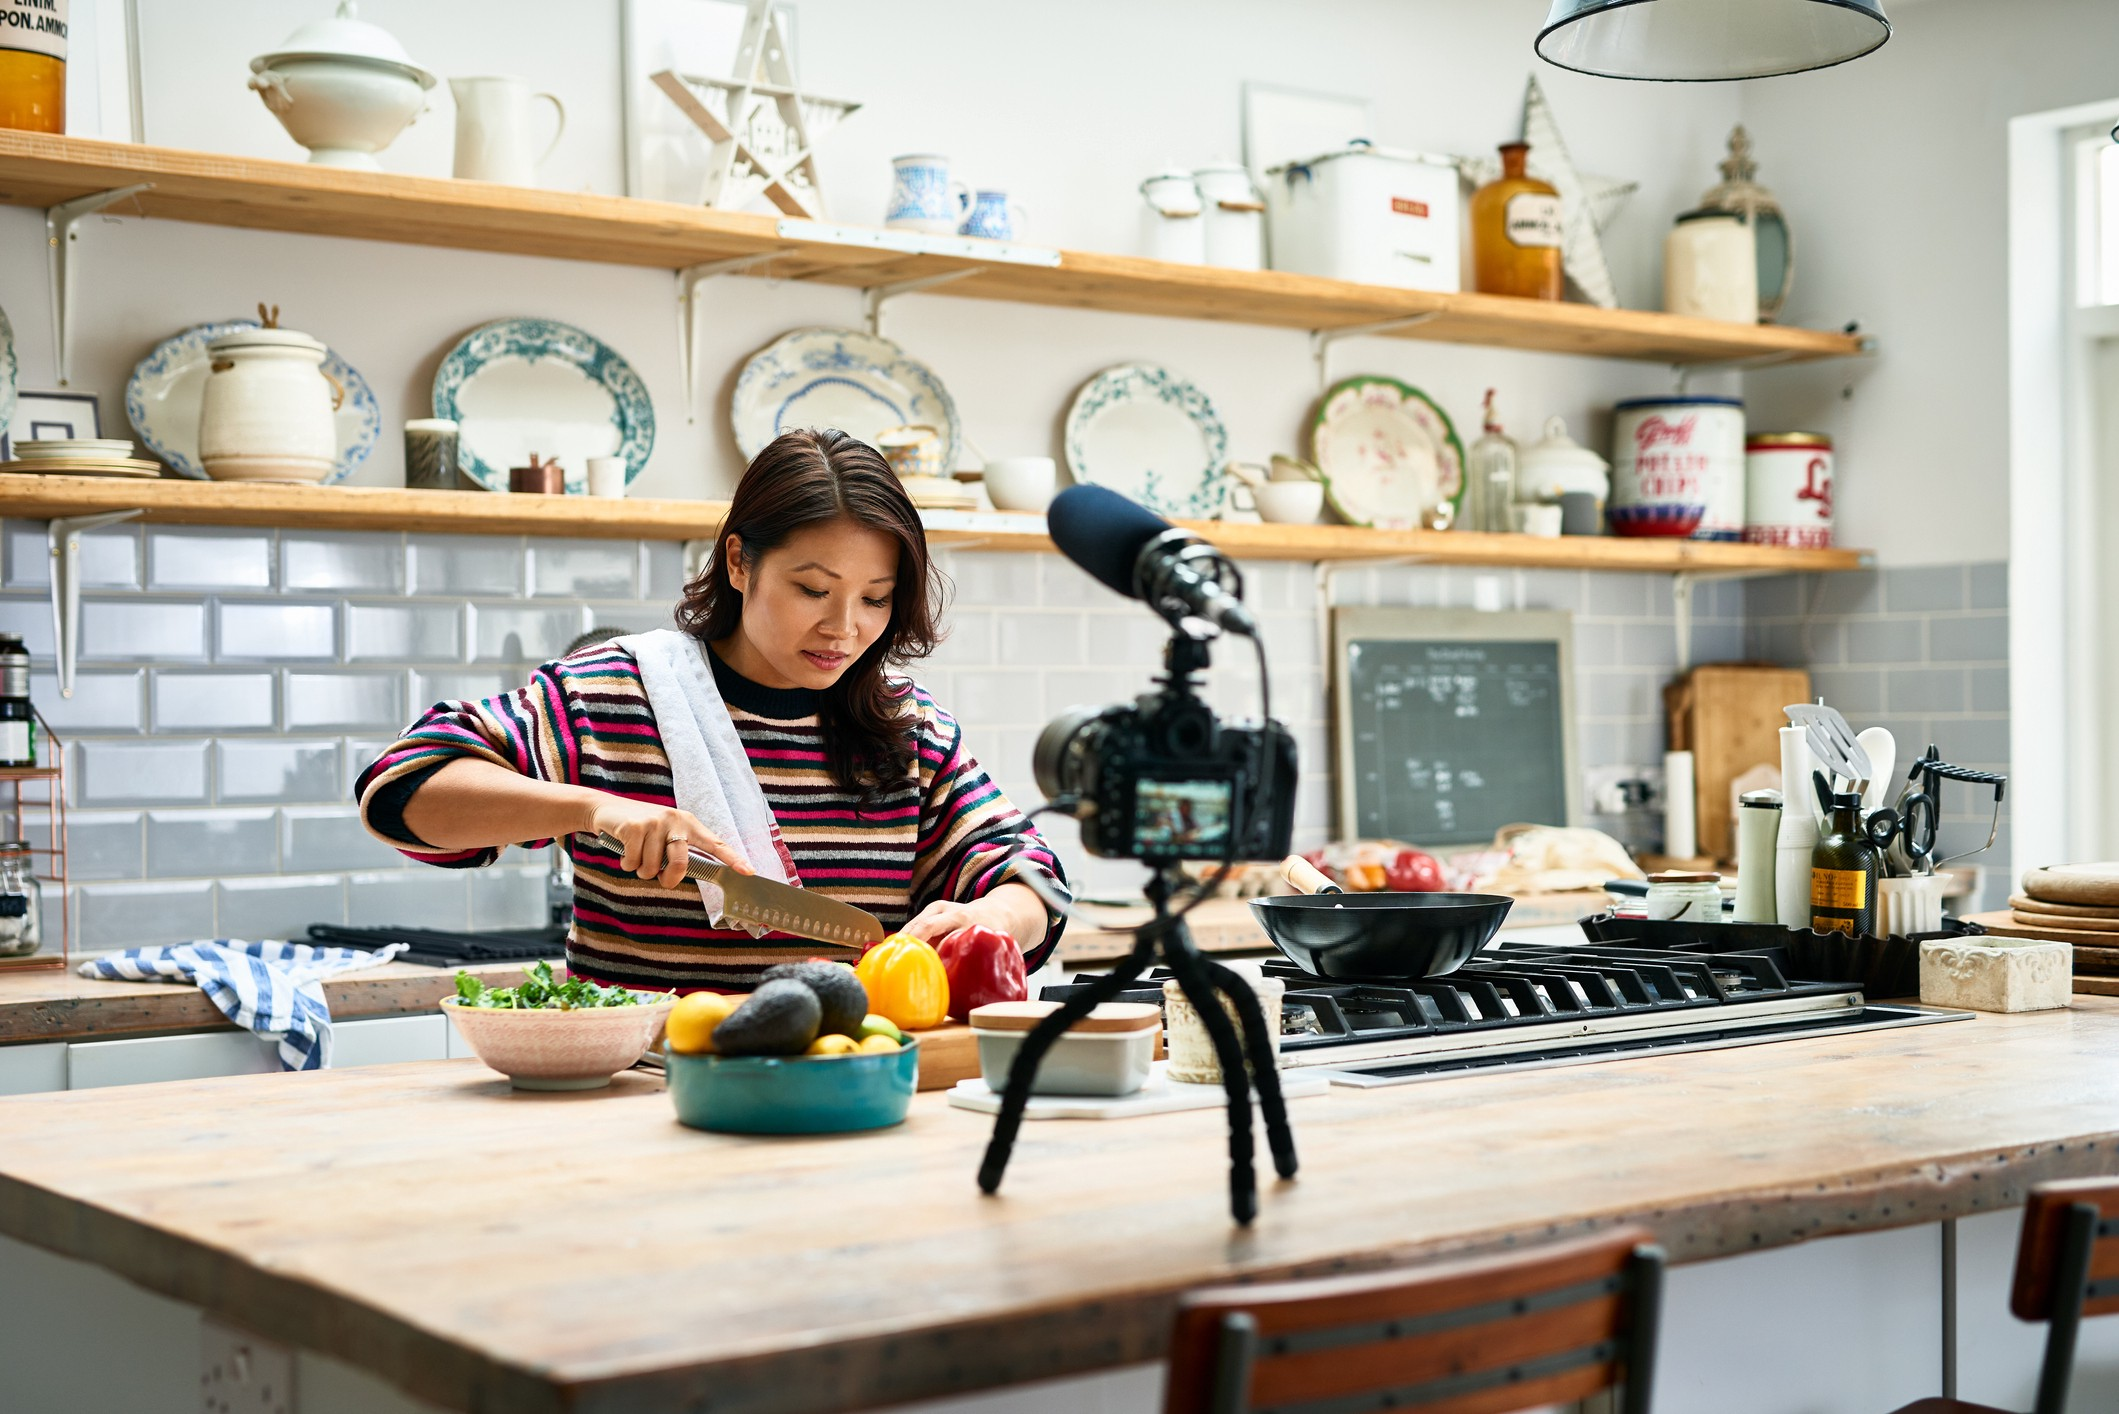 Adult woman preparing a meal and chopping fresh ingredients in front of a video camera on a tripod.